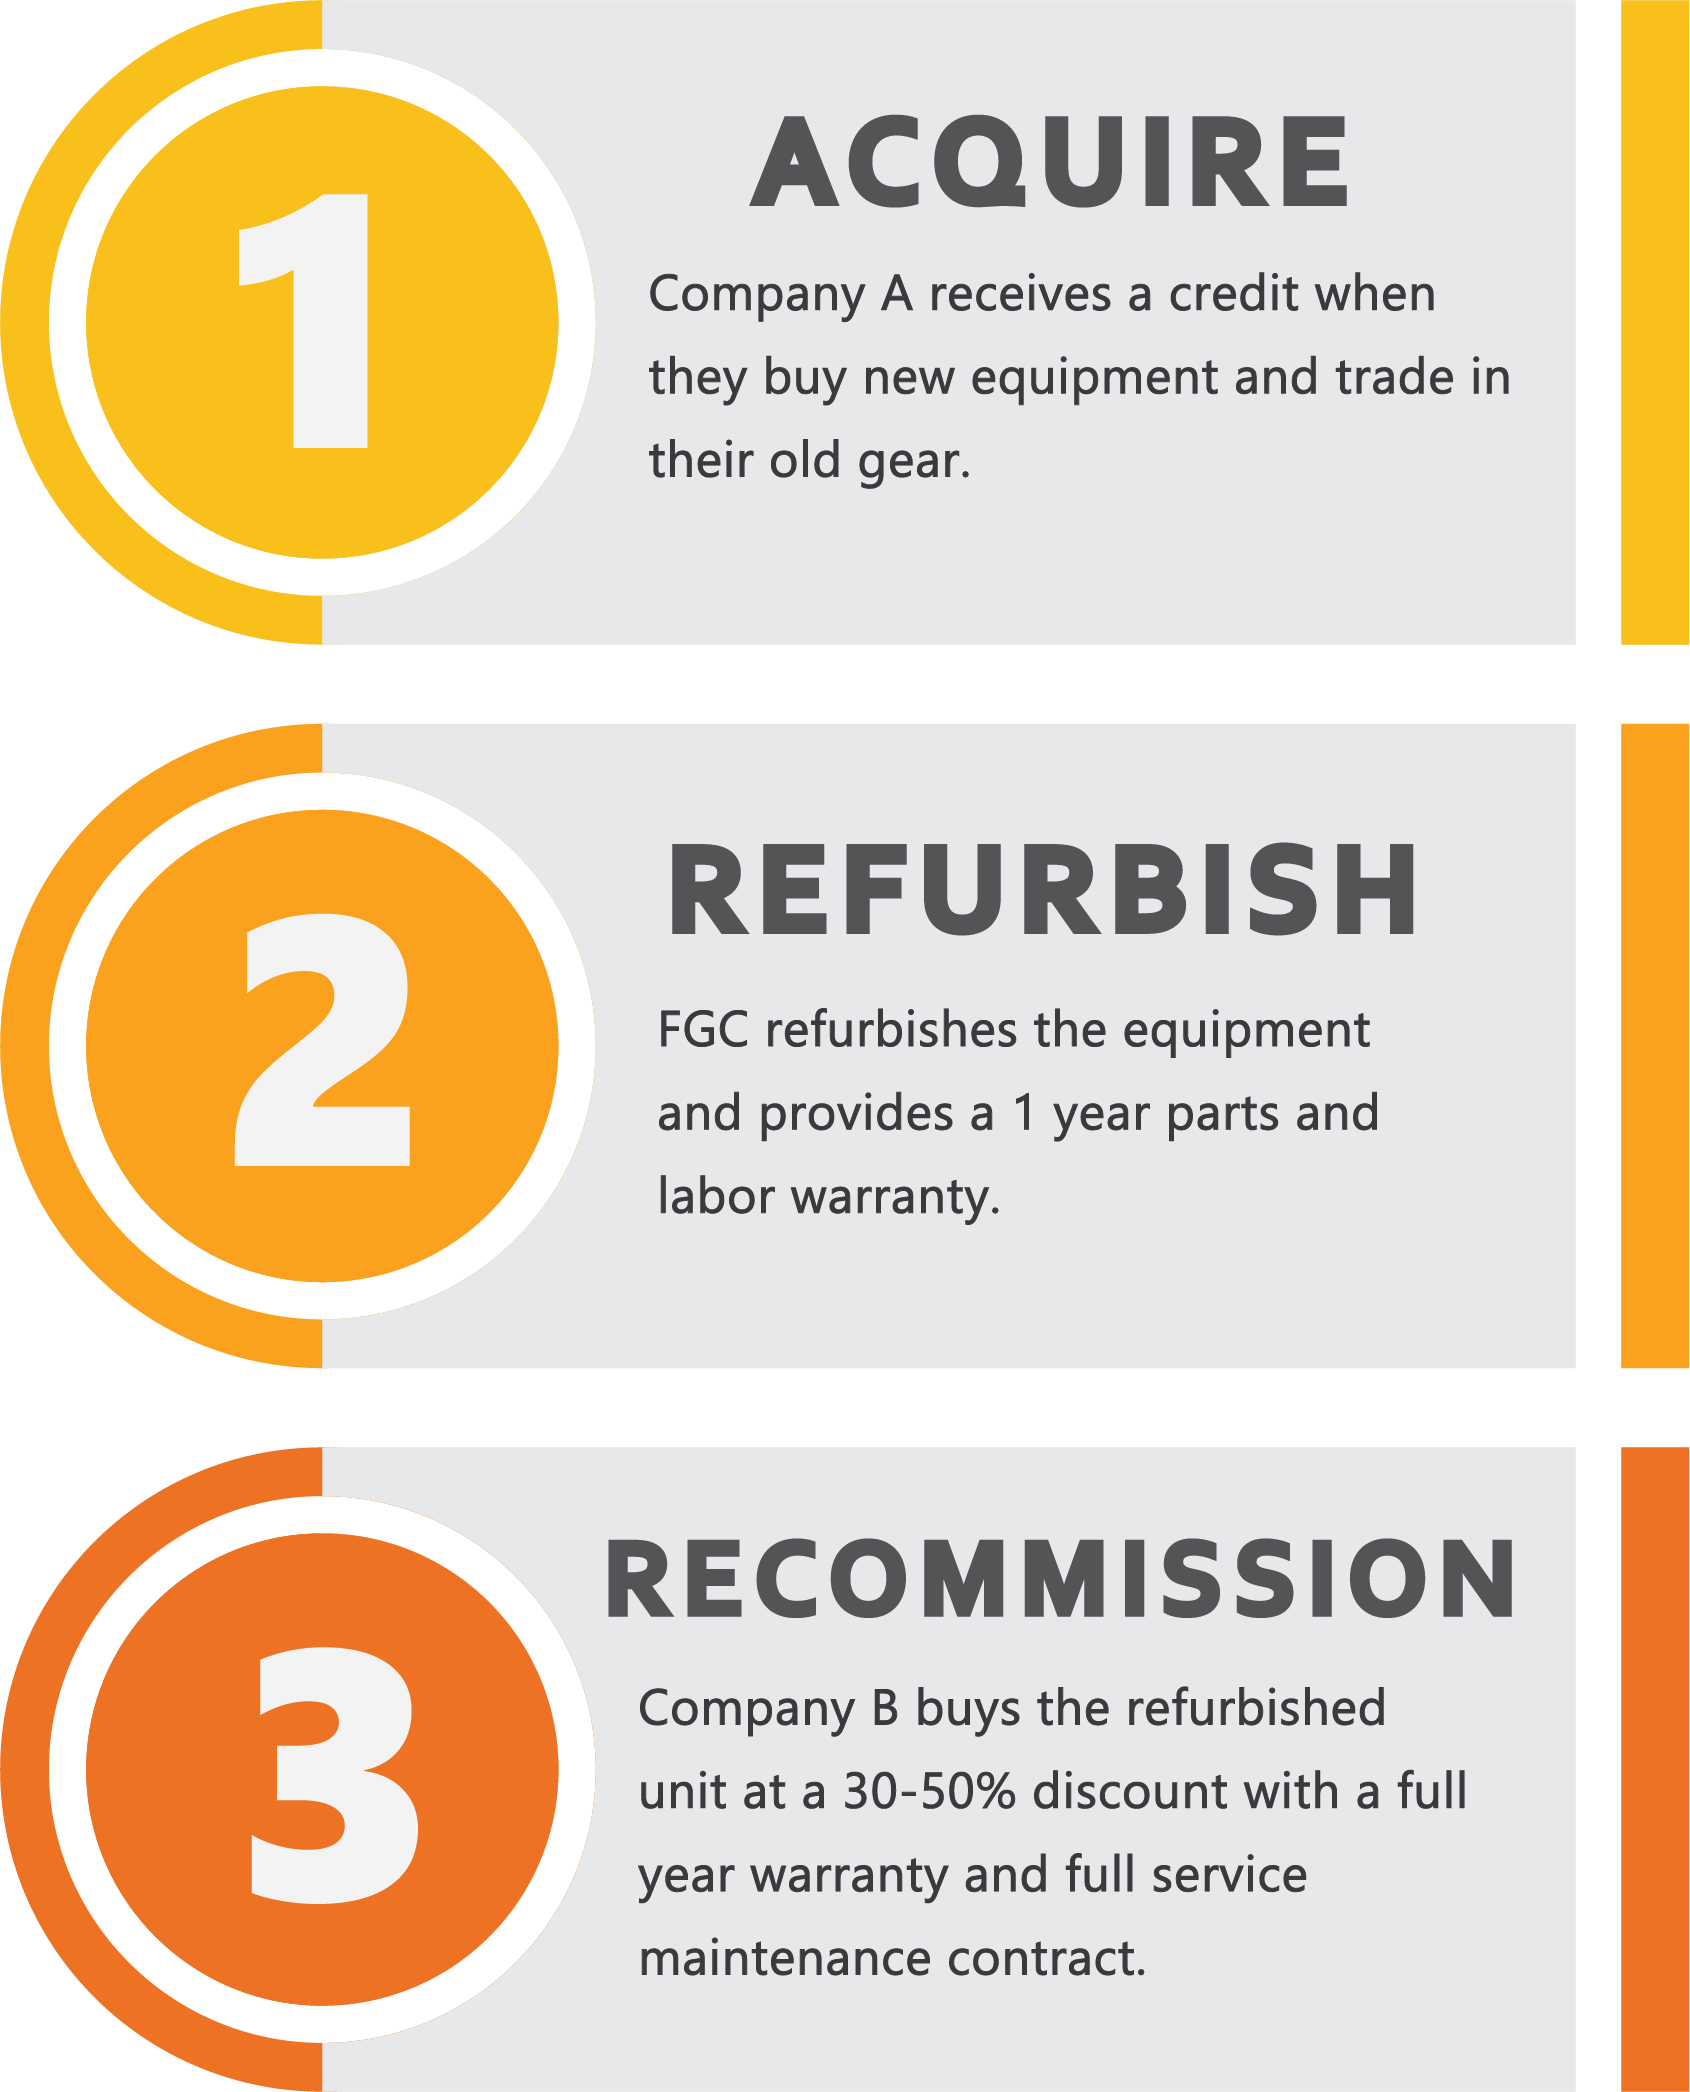 This in an infographic that labels the steps to creating our refurbished UPS units. The steps are acquire, refurbish, and recommission.